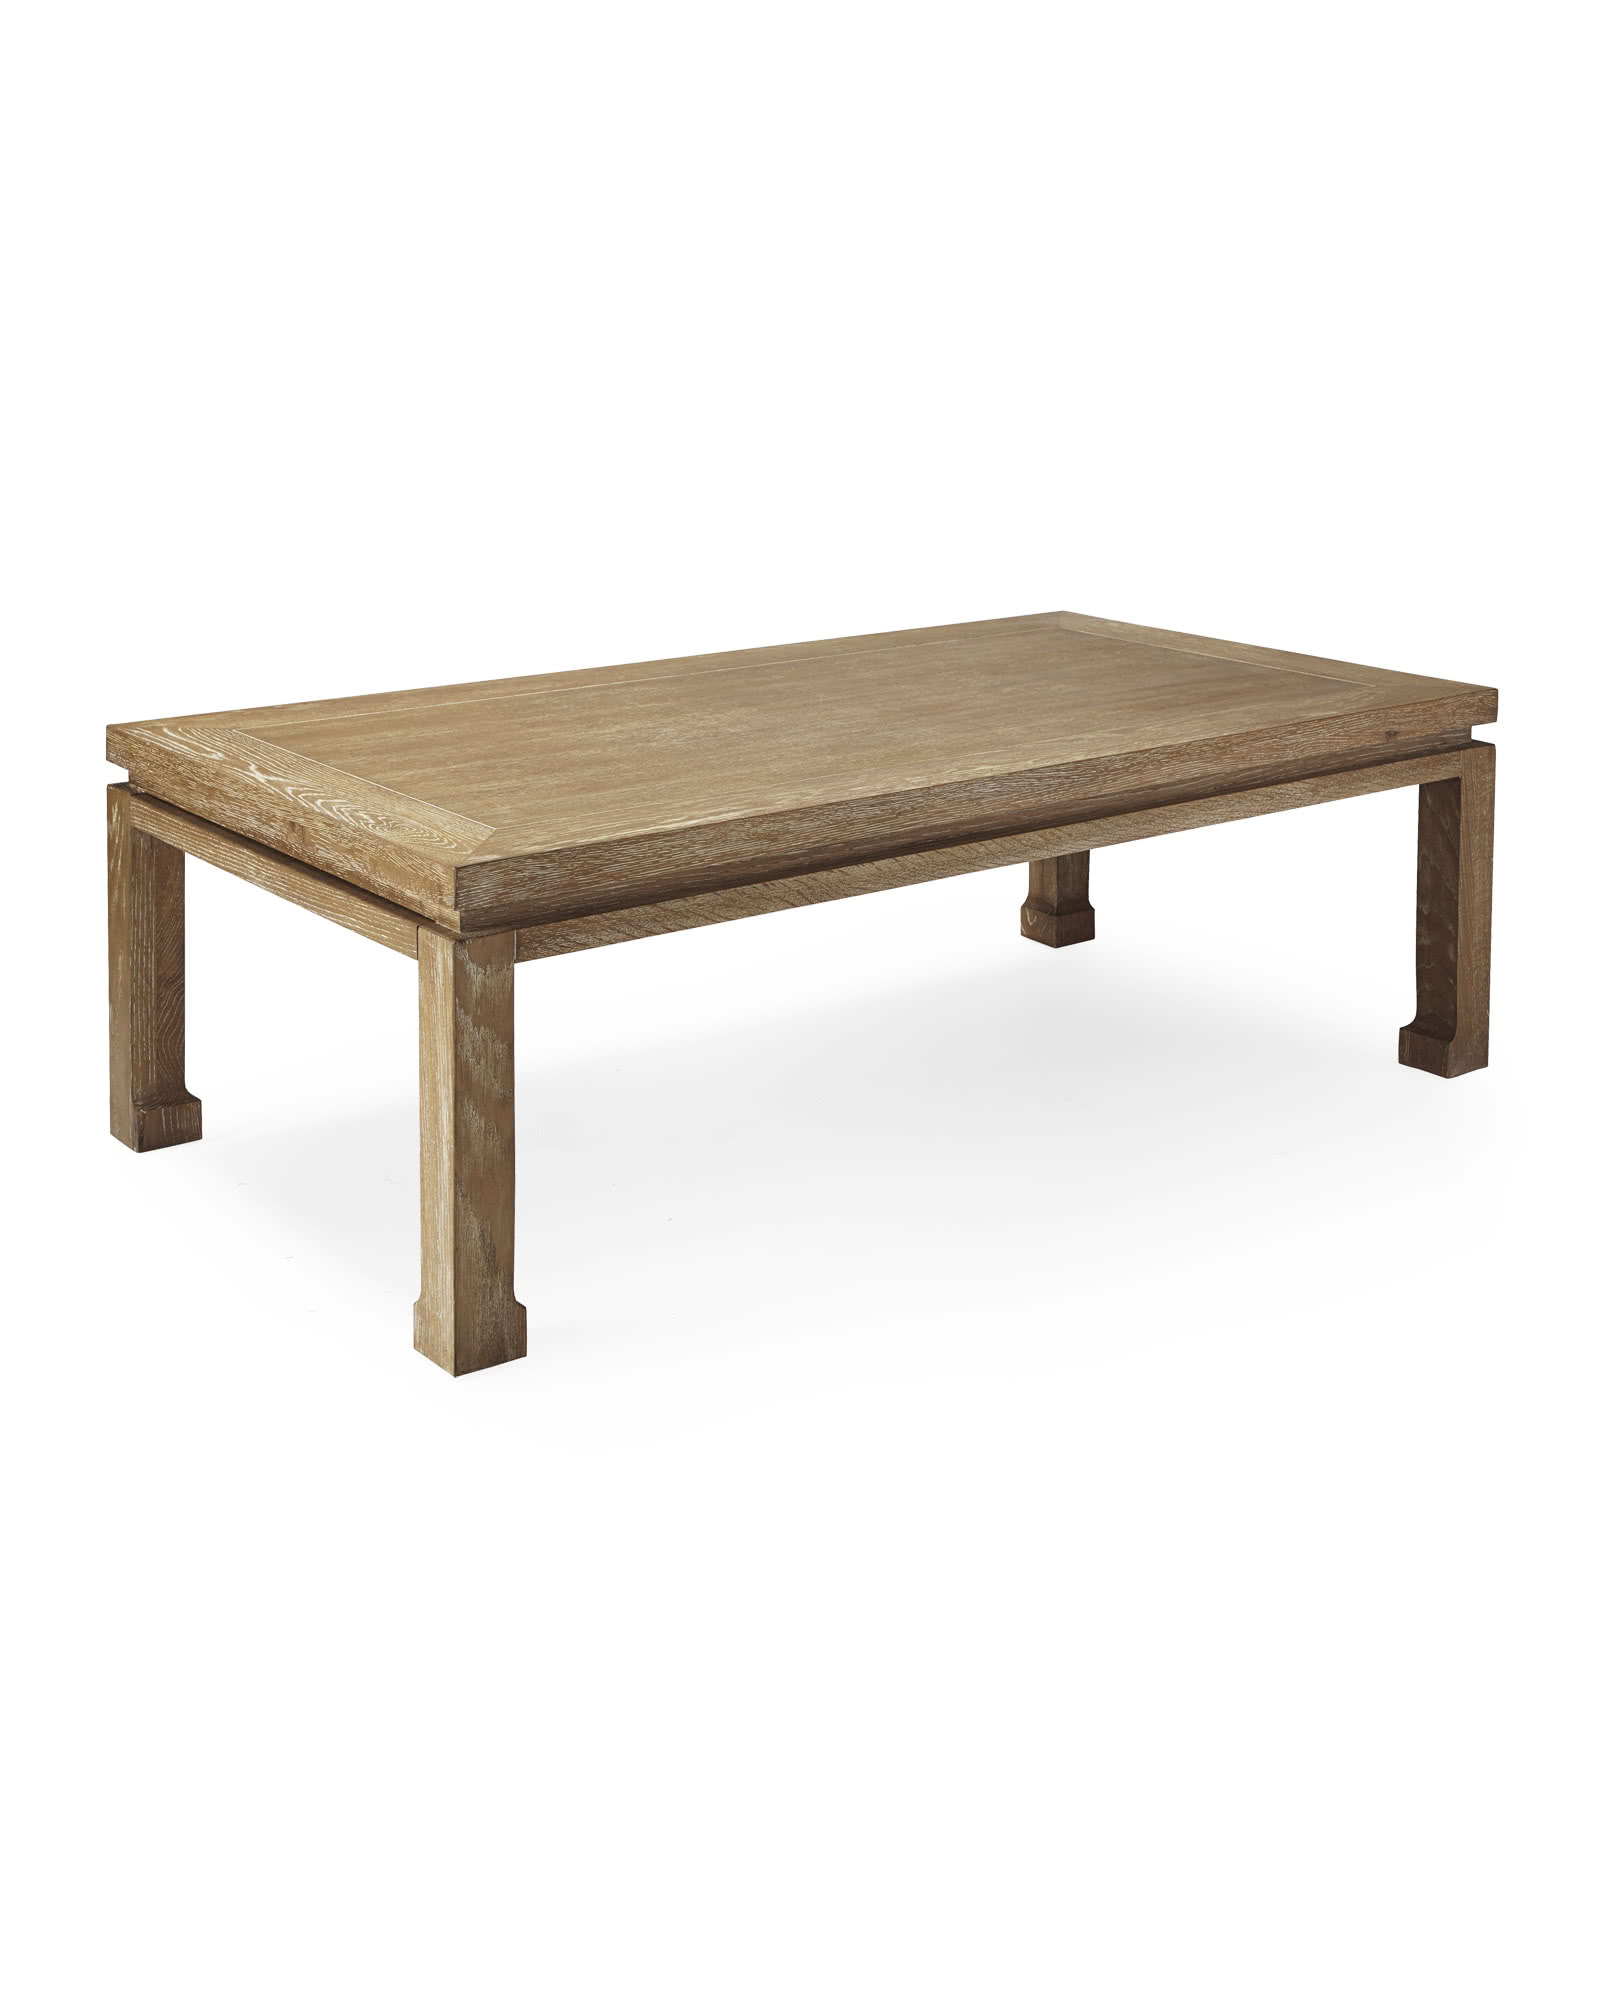 Reese Coffee Table,